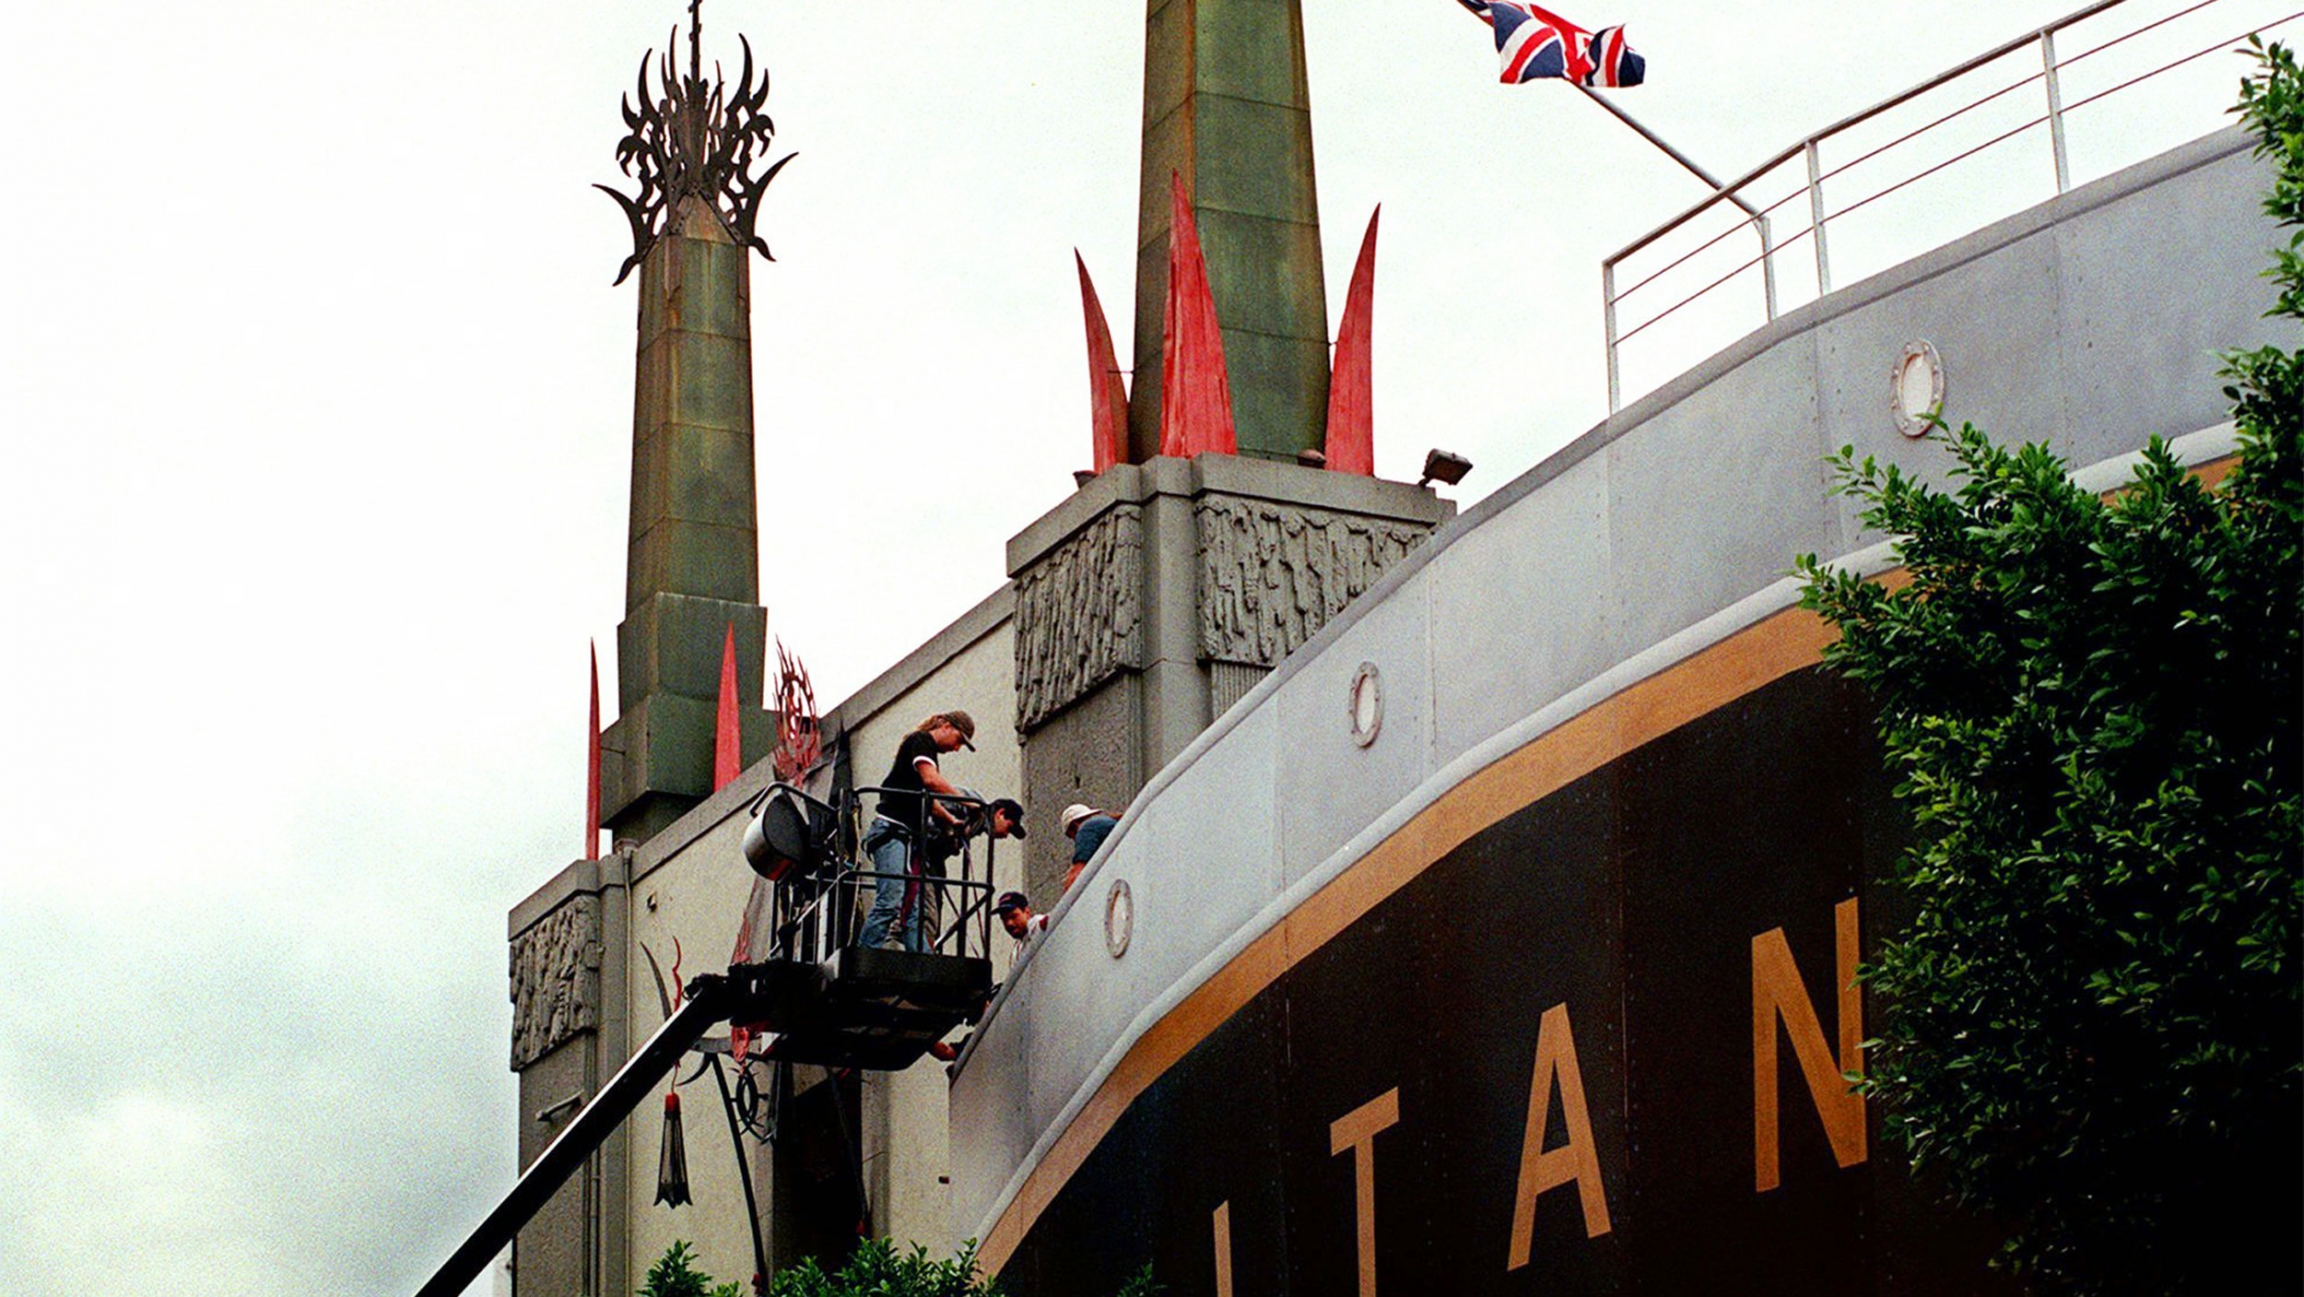 Men working on the facade of a Titanic replica in China